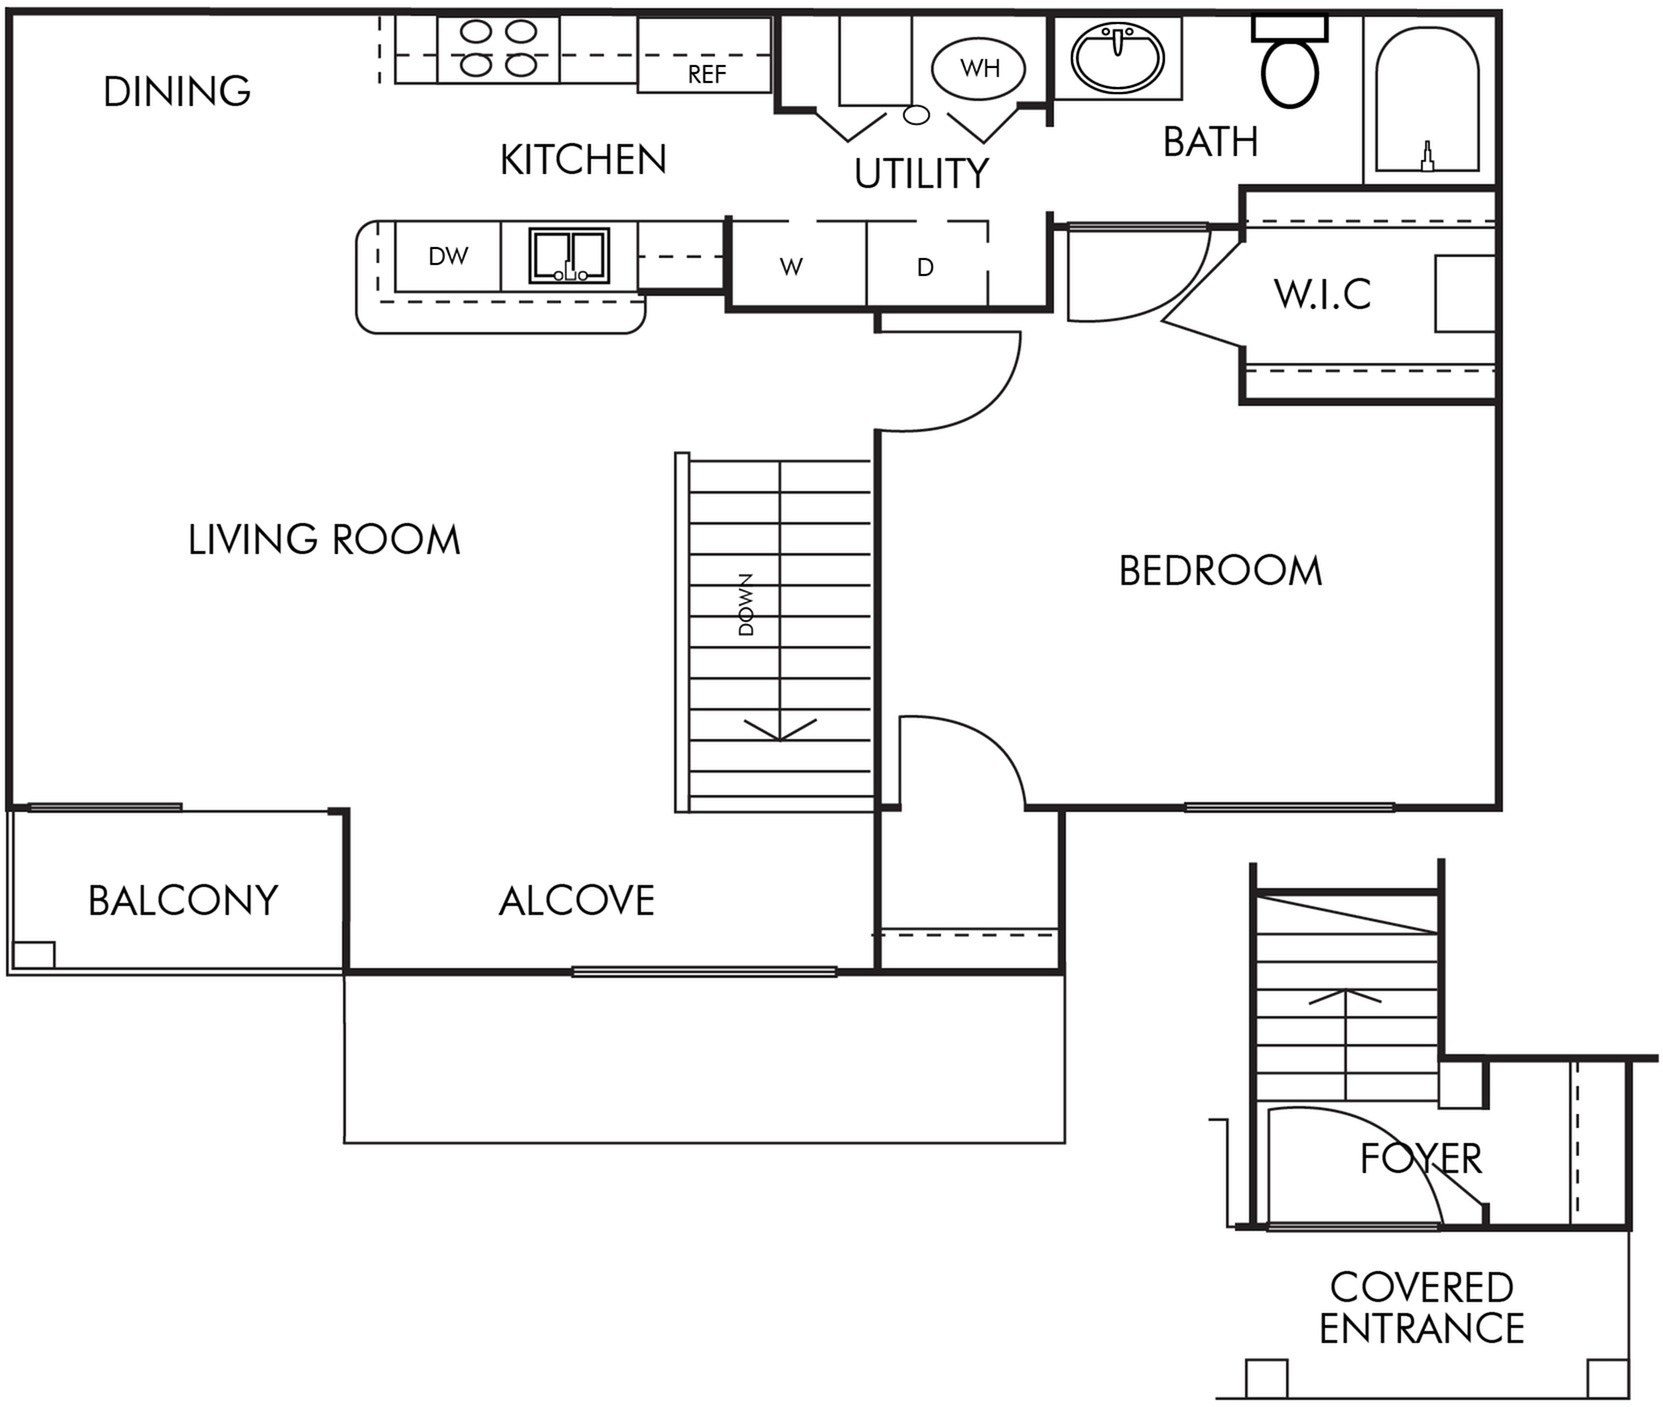 1 Bed 1 Bath- 2nd floor